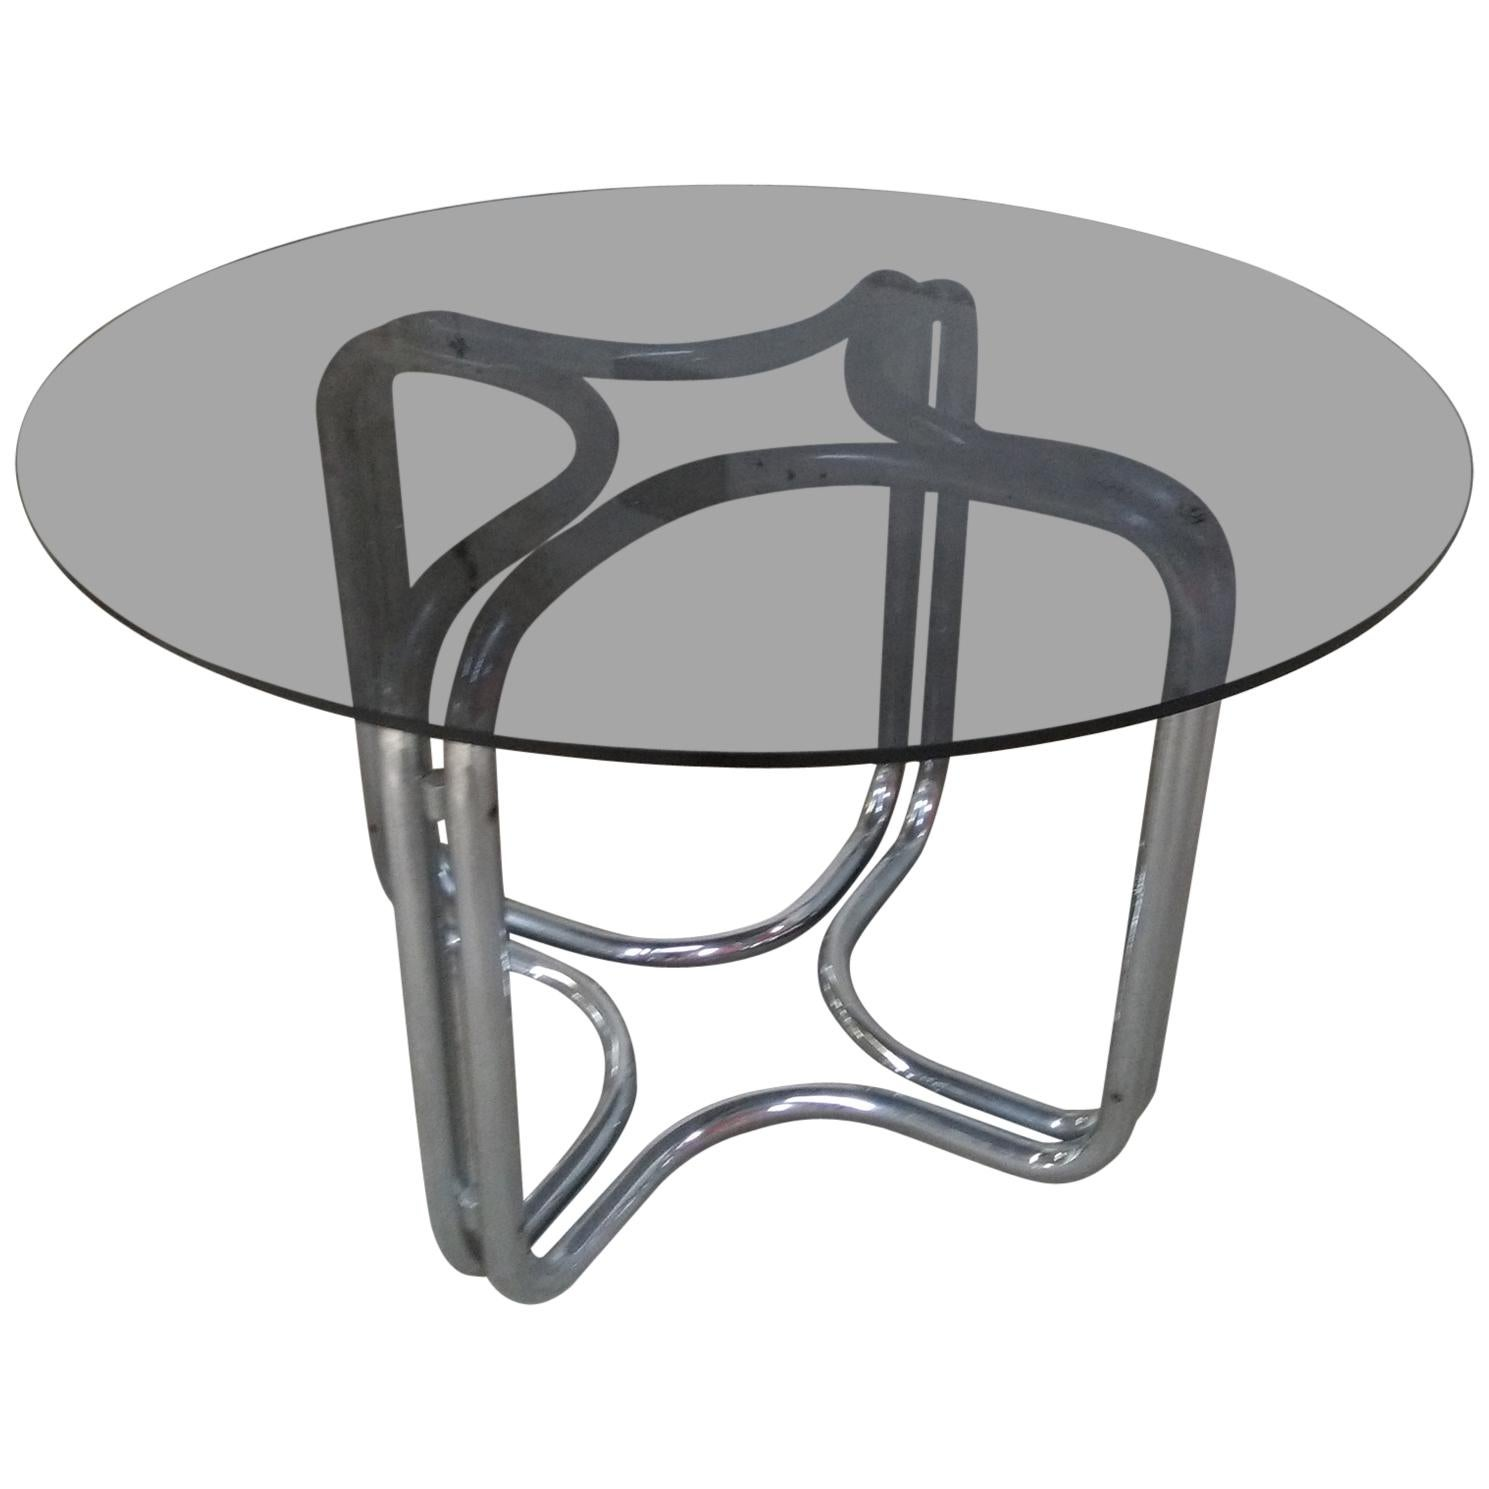 Mid-Century Modern Italian Round Chrome Dining Table by Giotto Stoppino, 1970s